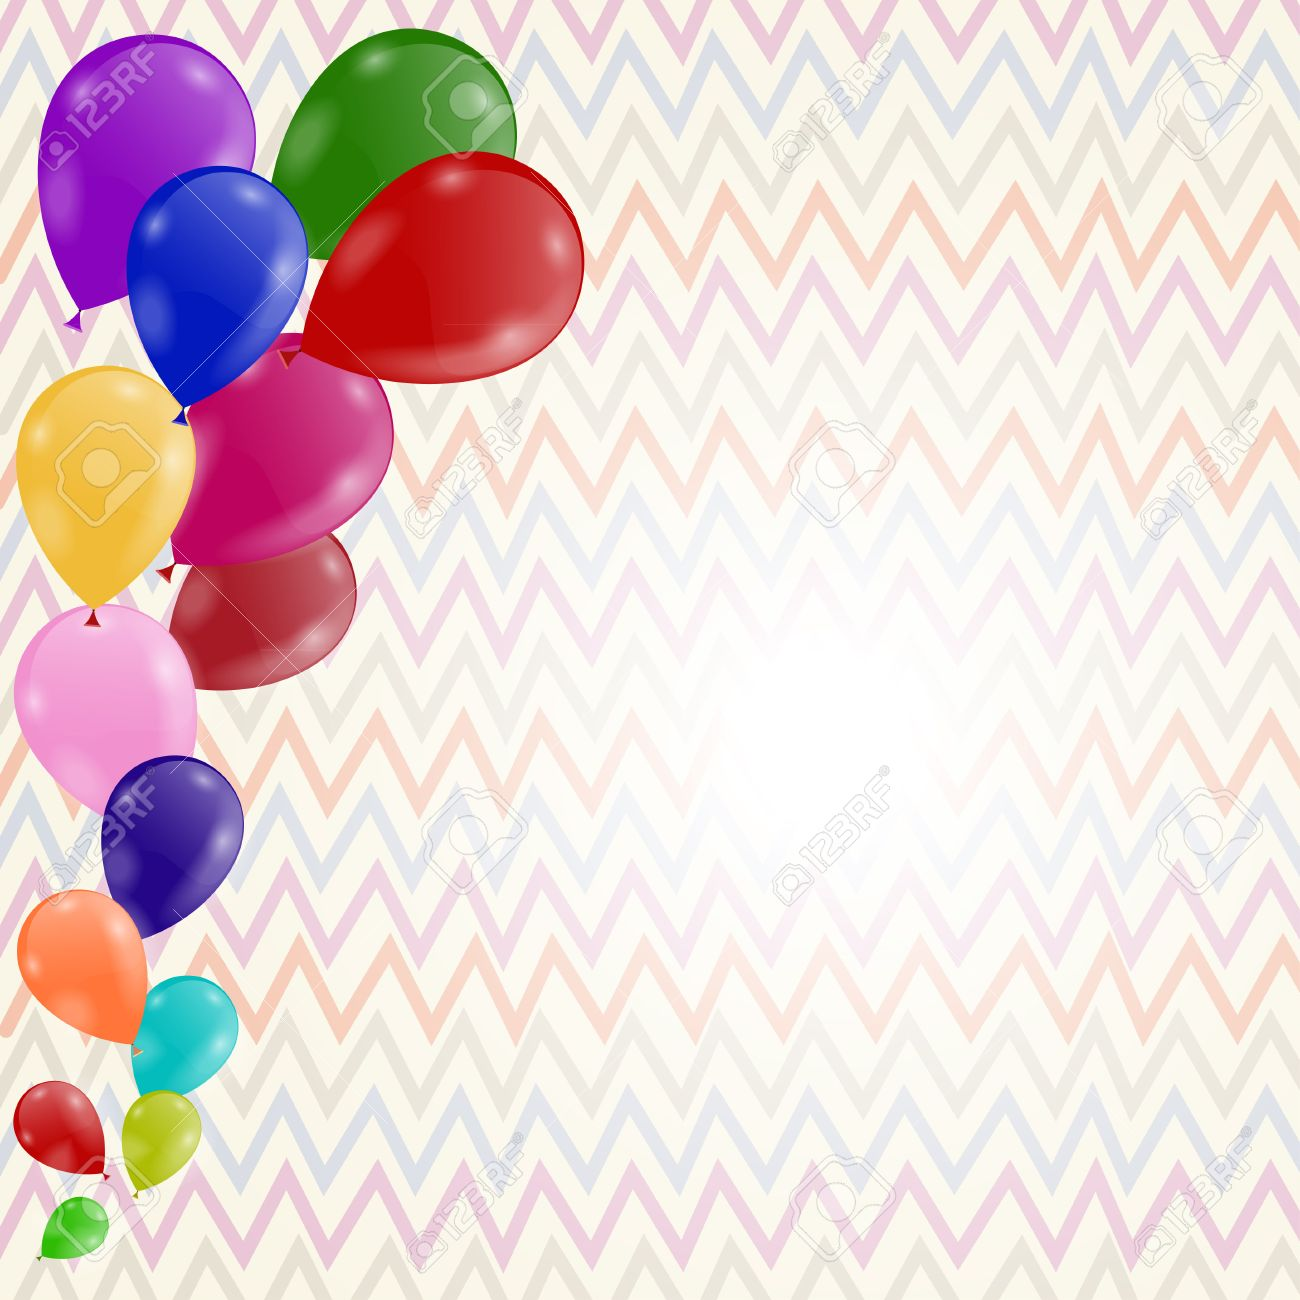 colored background with balloons birthday invitation royalty free